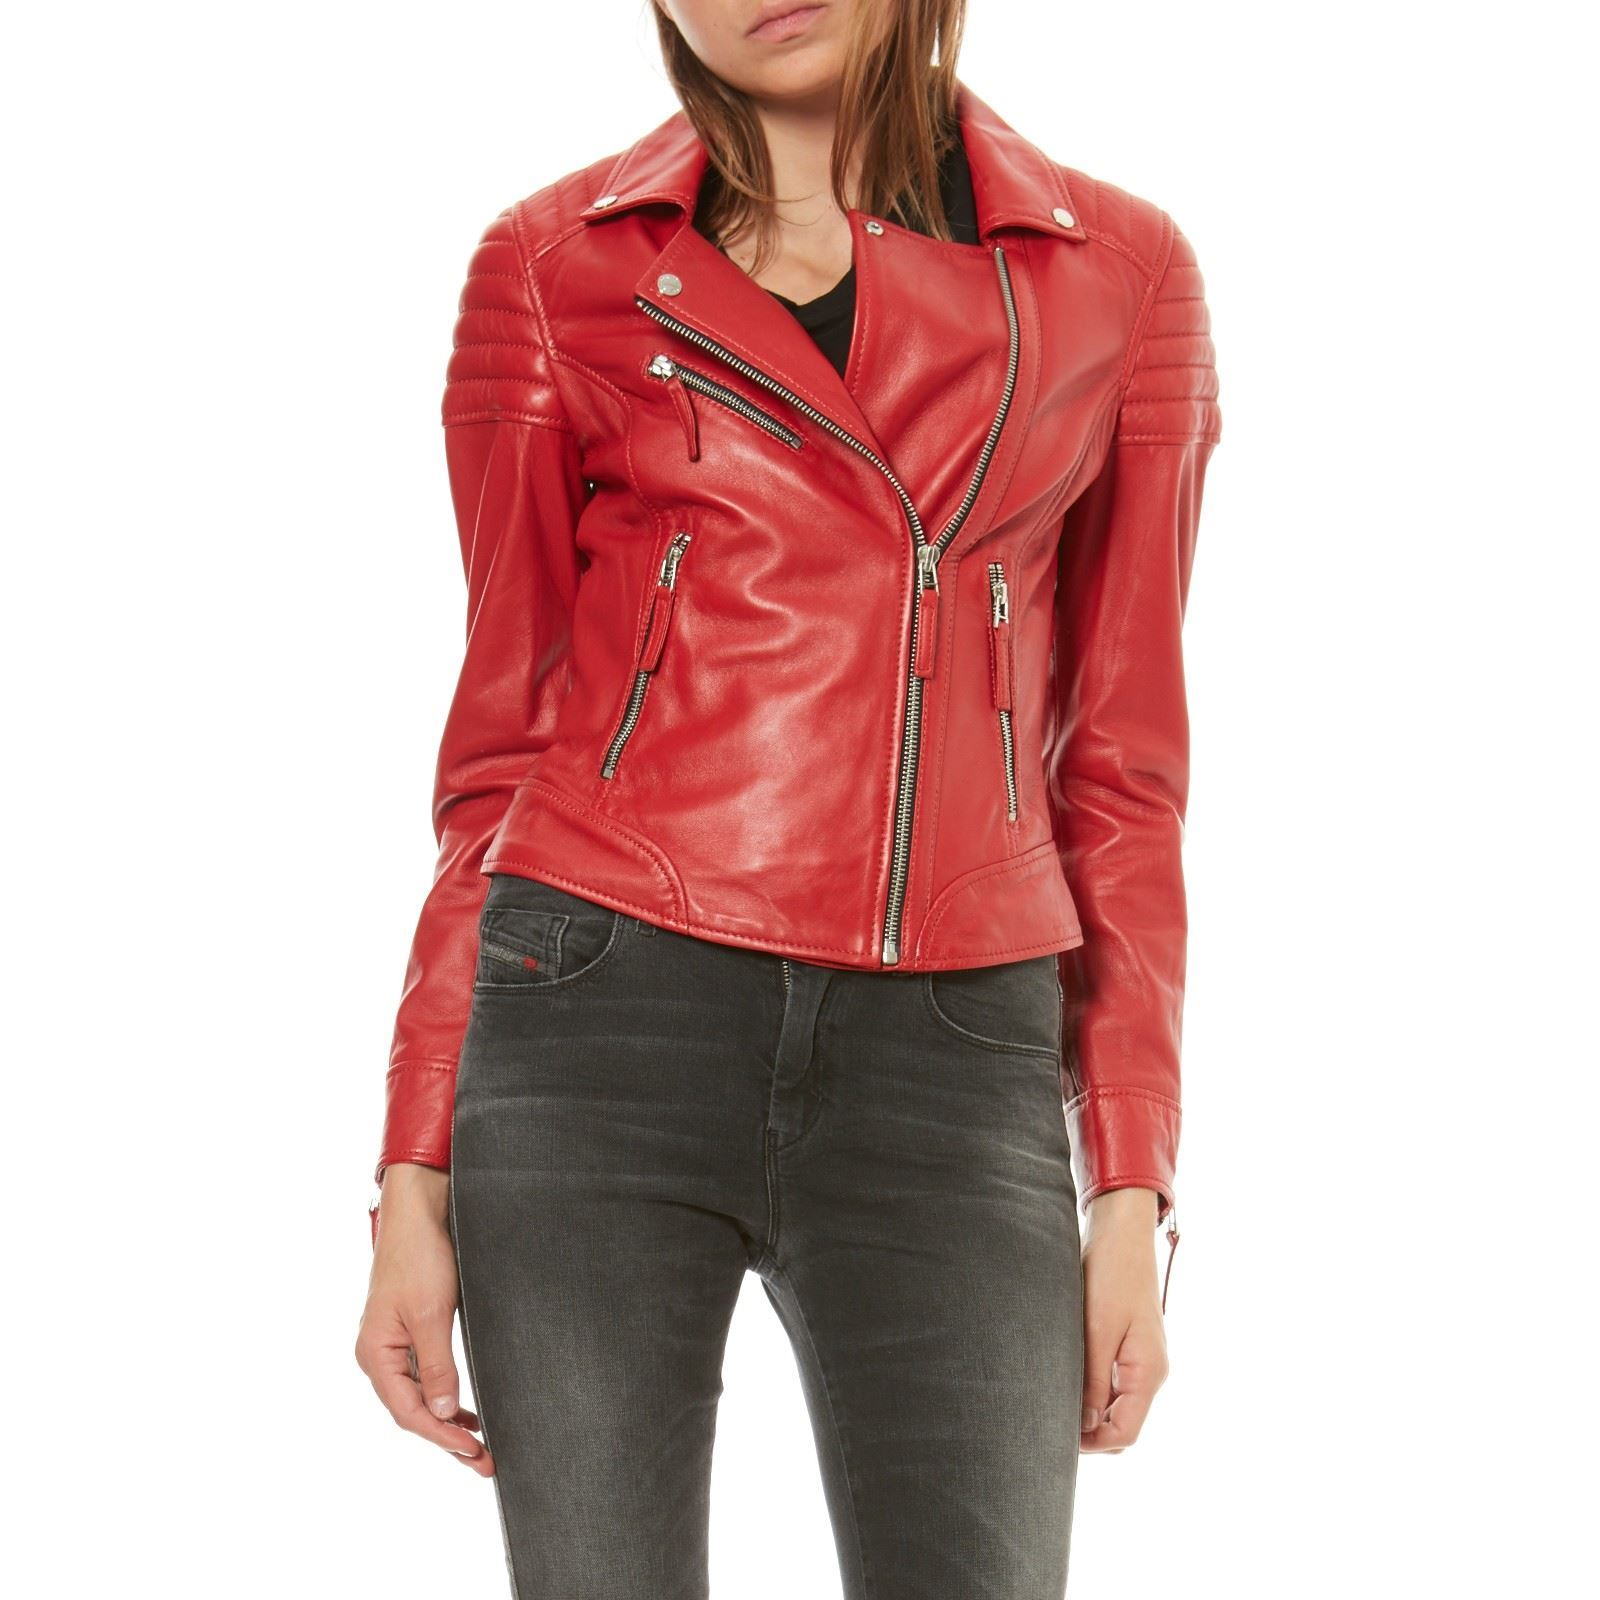 Oakwood Salome - Veste en cuir de mouton - rouge   BrandAlley ca582eb9a175